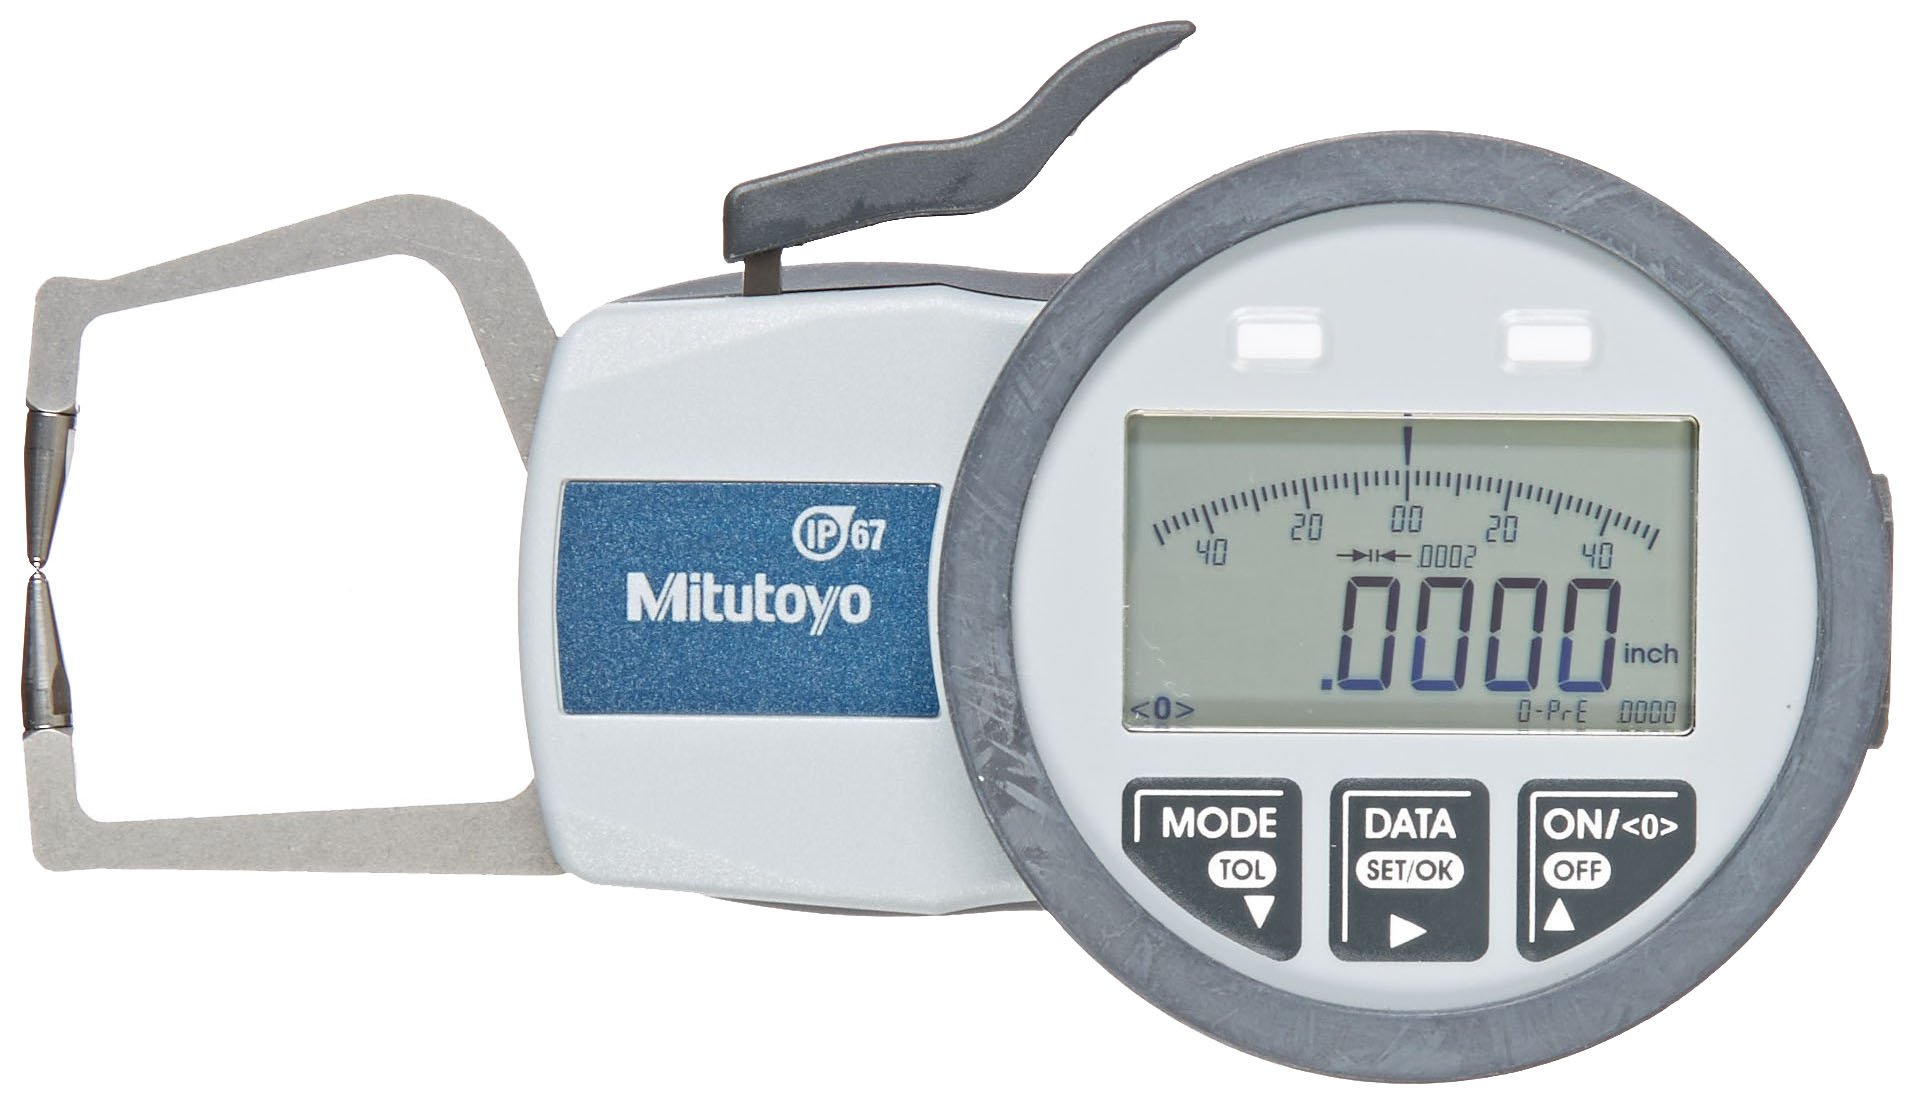 Mitutoyo 209-570 Caliper Gauge, Inch/Metric, Pointed Jaw, 0-0.39'' Range, +/-0.0008'' Accuracy, 0.0002'' Resolution, Meets IP63/IP67 Specifications by Mitutoyo